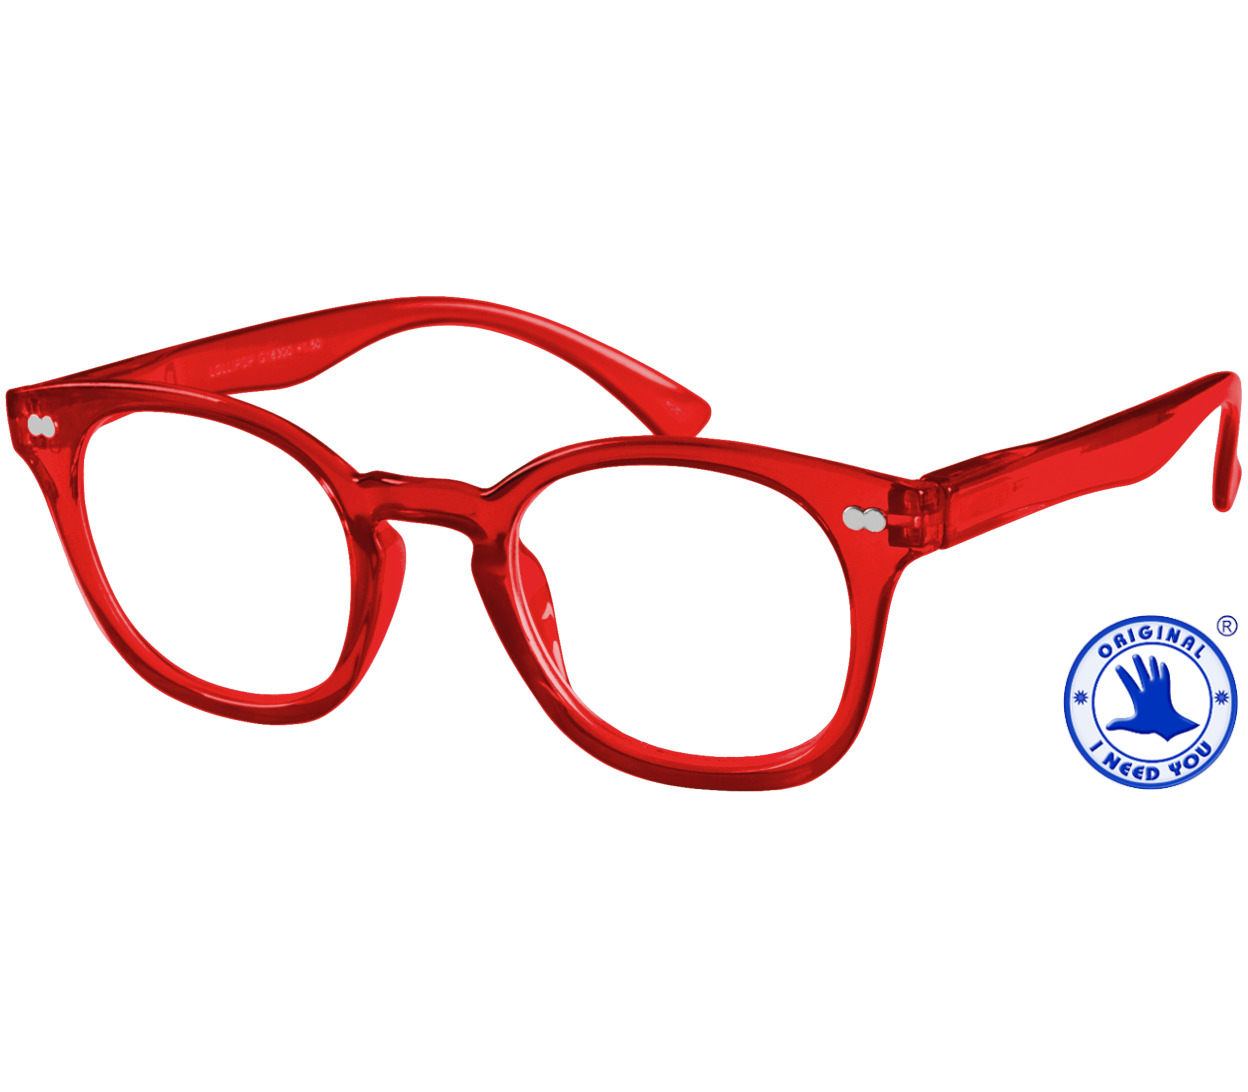 Main Image (Angle) - Lollipop (Red) Retro Reading Glasses